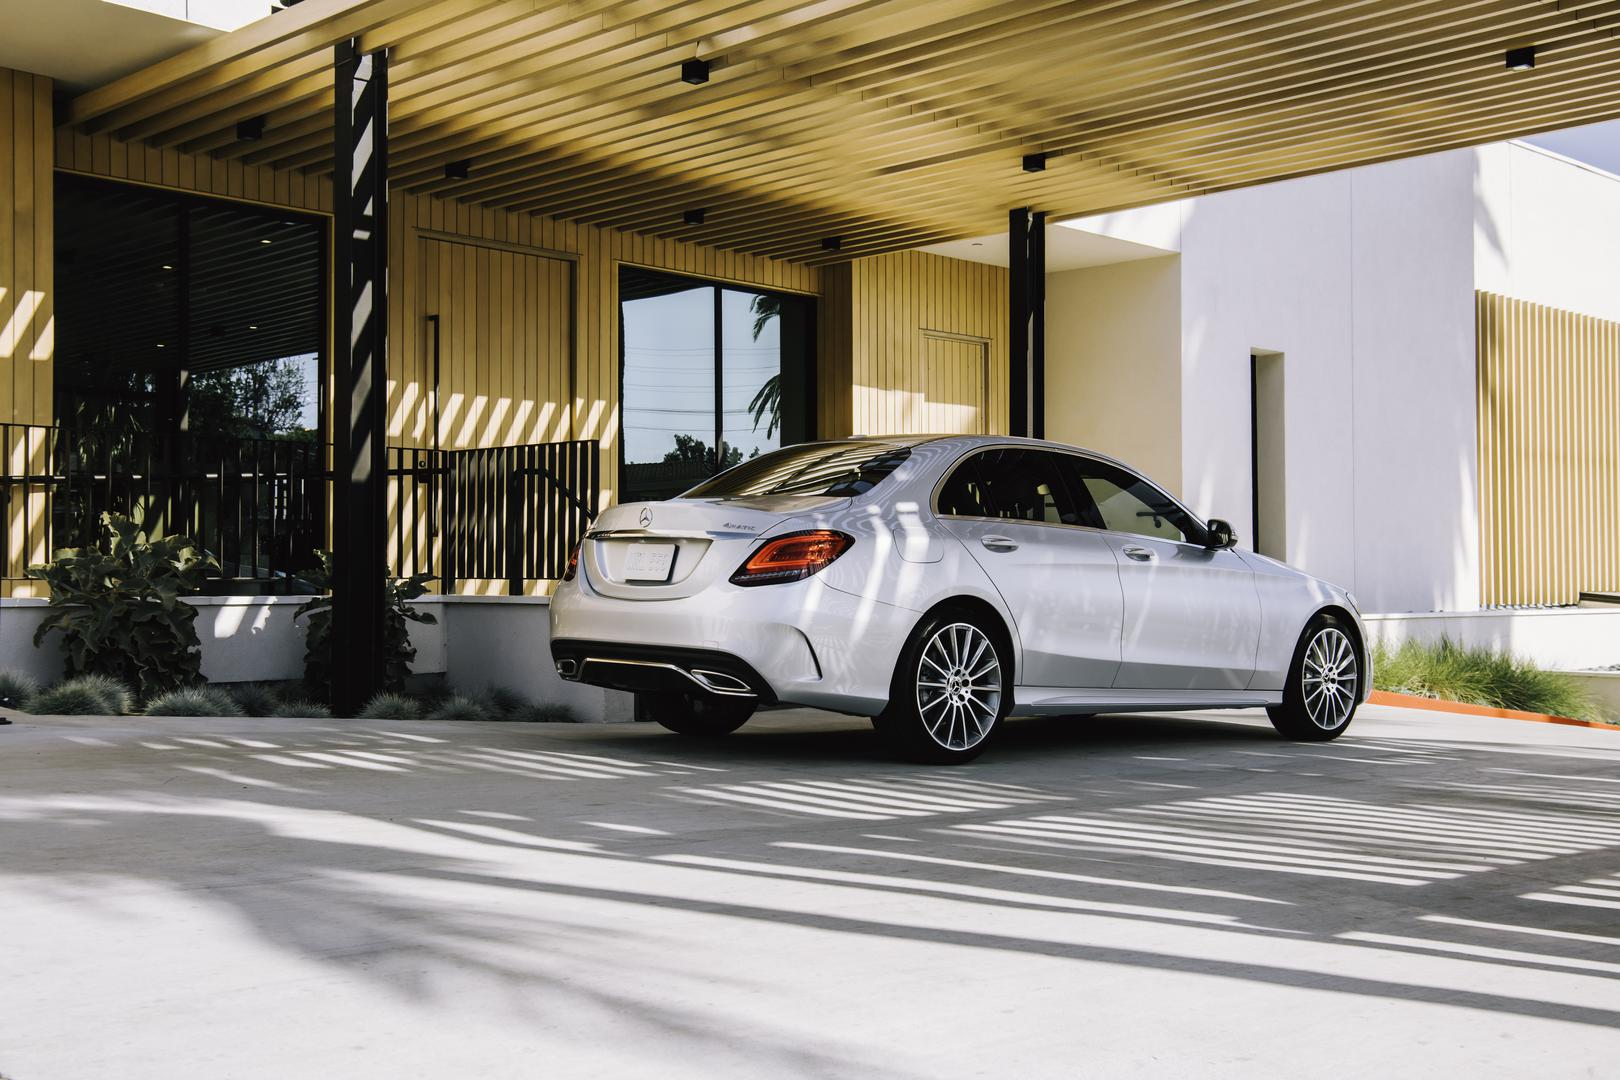 Mercedes-Benzs available in Orlando, FL at Mercedes-Benz of South Orlando